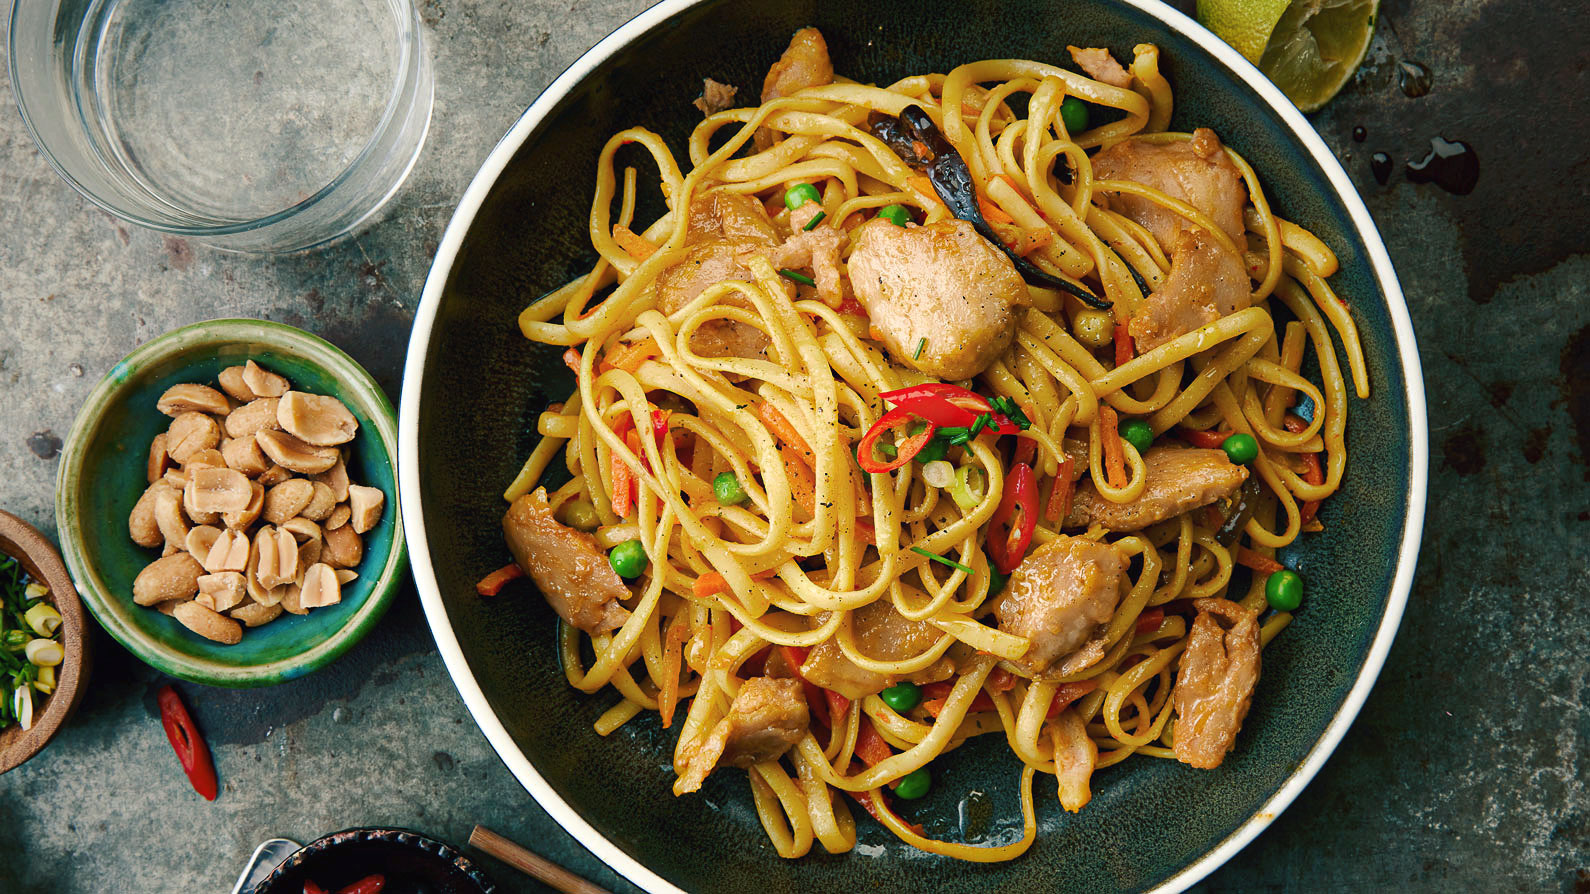 Stir-Fried Chick'n and Lo Mein